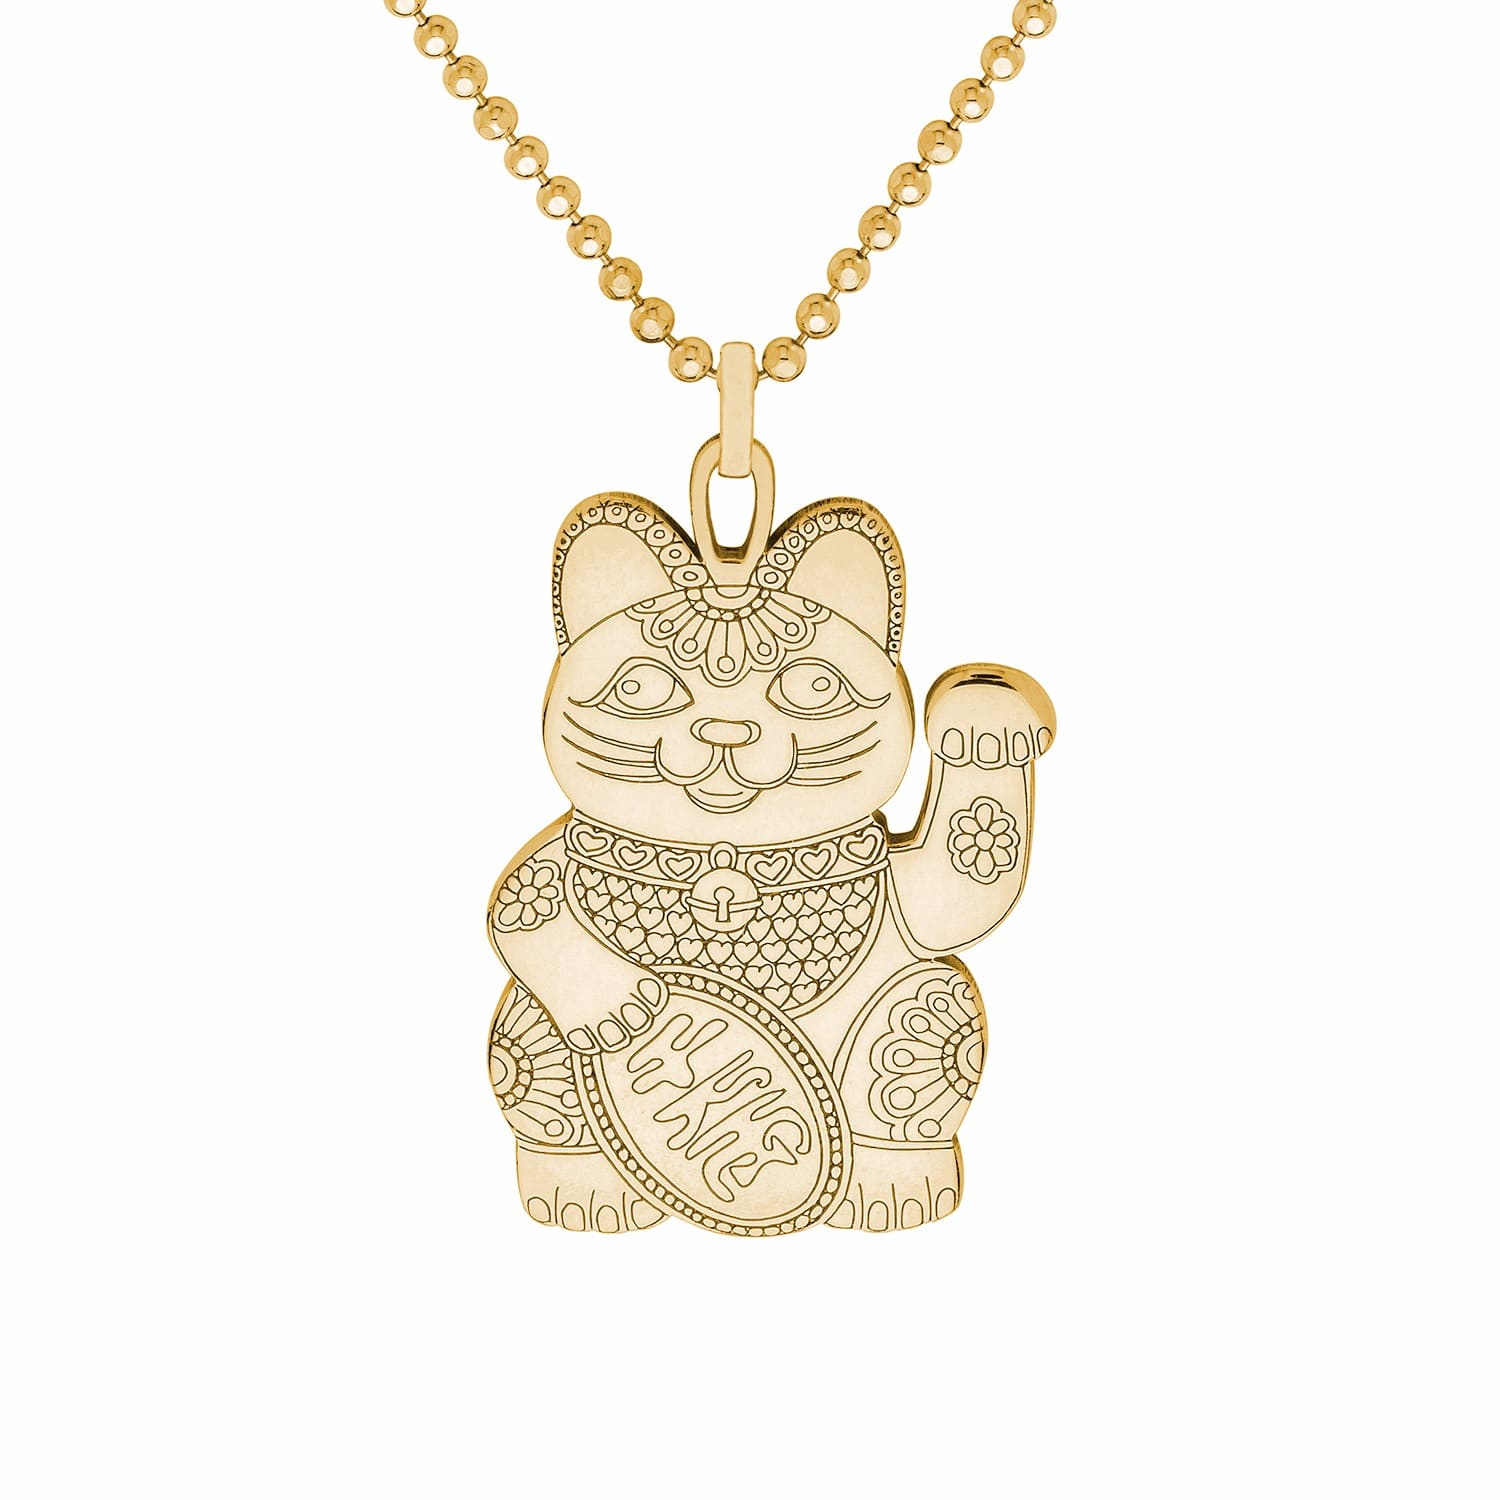 kay sterling to zm ct cat round gemstones gold tw mv en diamond silver necklace diamonds cut zoom hover kaystore